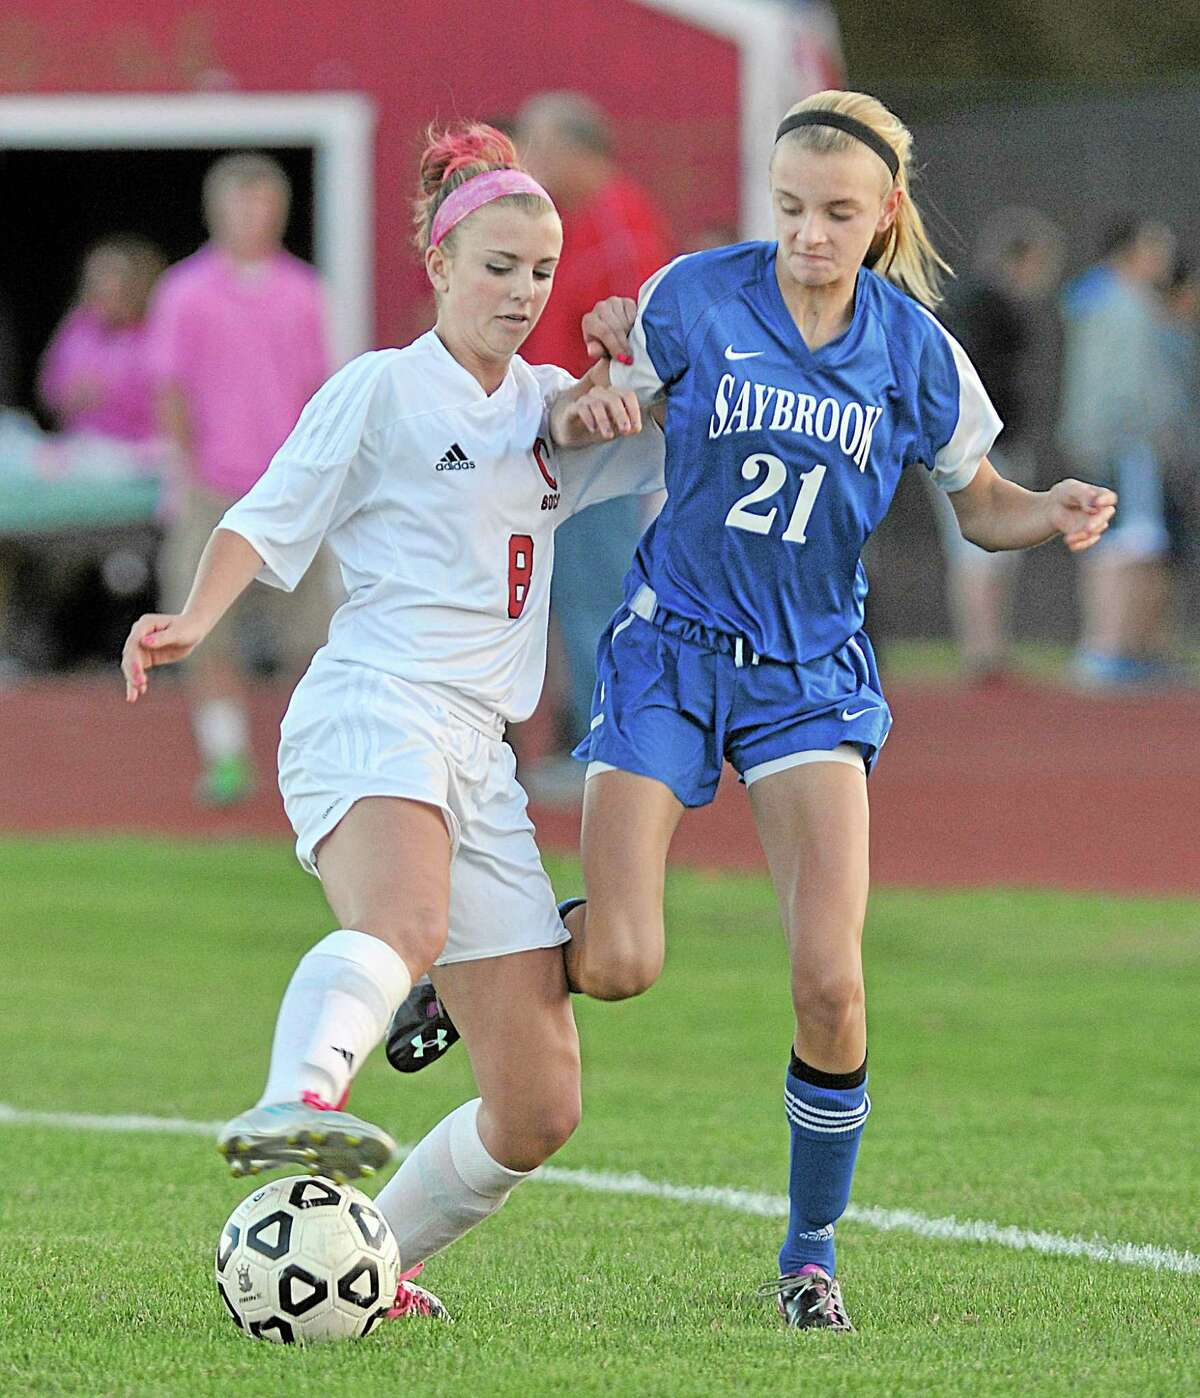 Cromwell midfielder Emma Belcourt moves the ball around Saybrook's Holly Coppes in Tuesday's game in Cromwell. Belcourt scored in the first half with 16:52 left on the clock. The Panthers won 2-1.